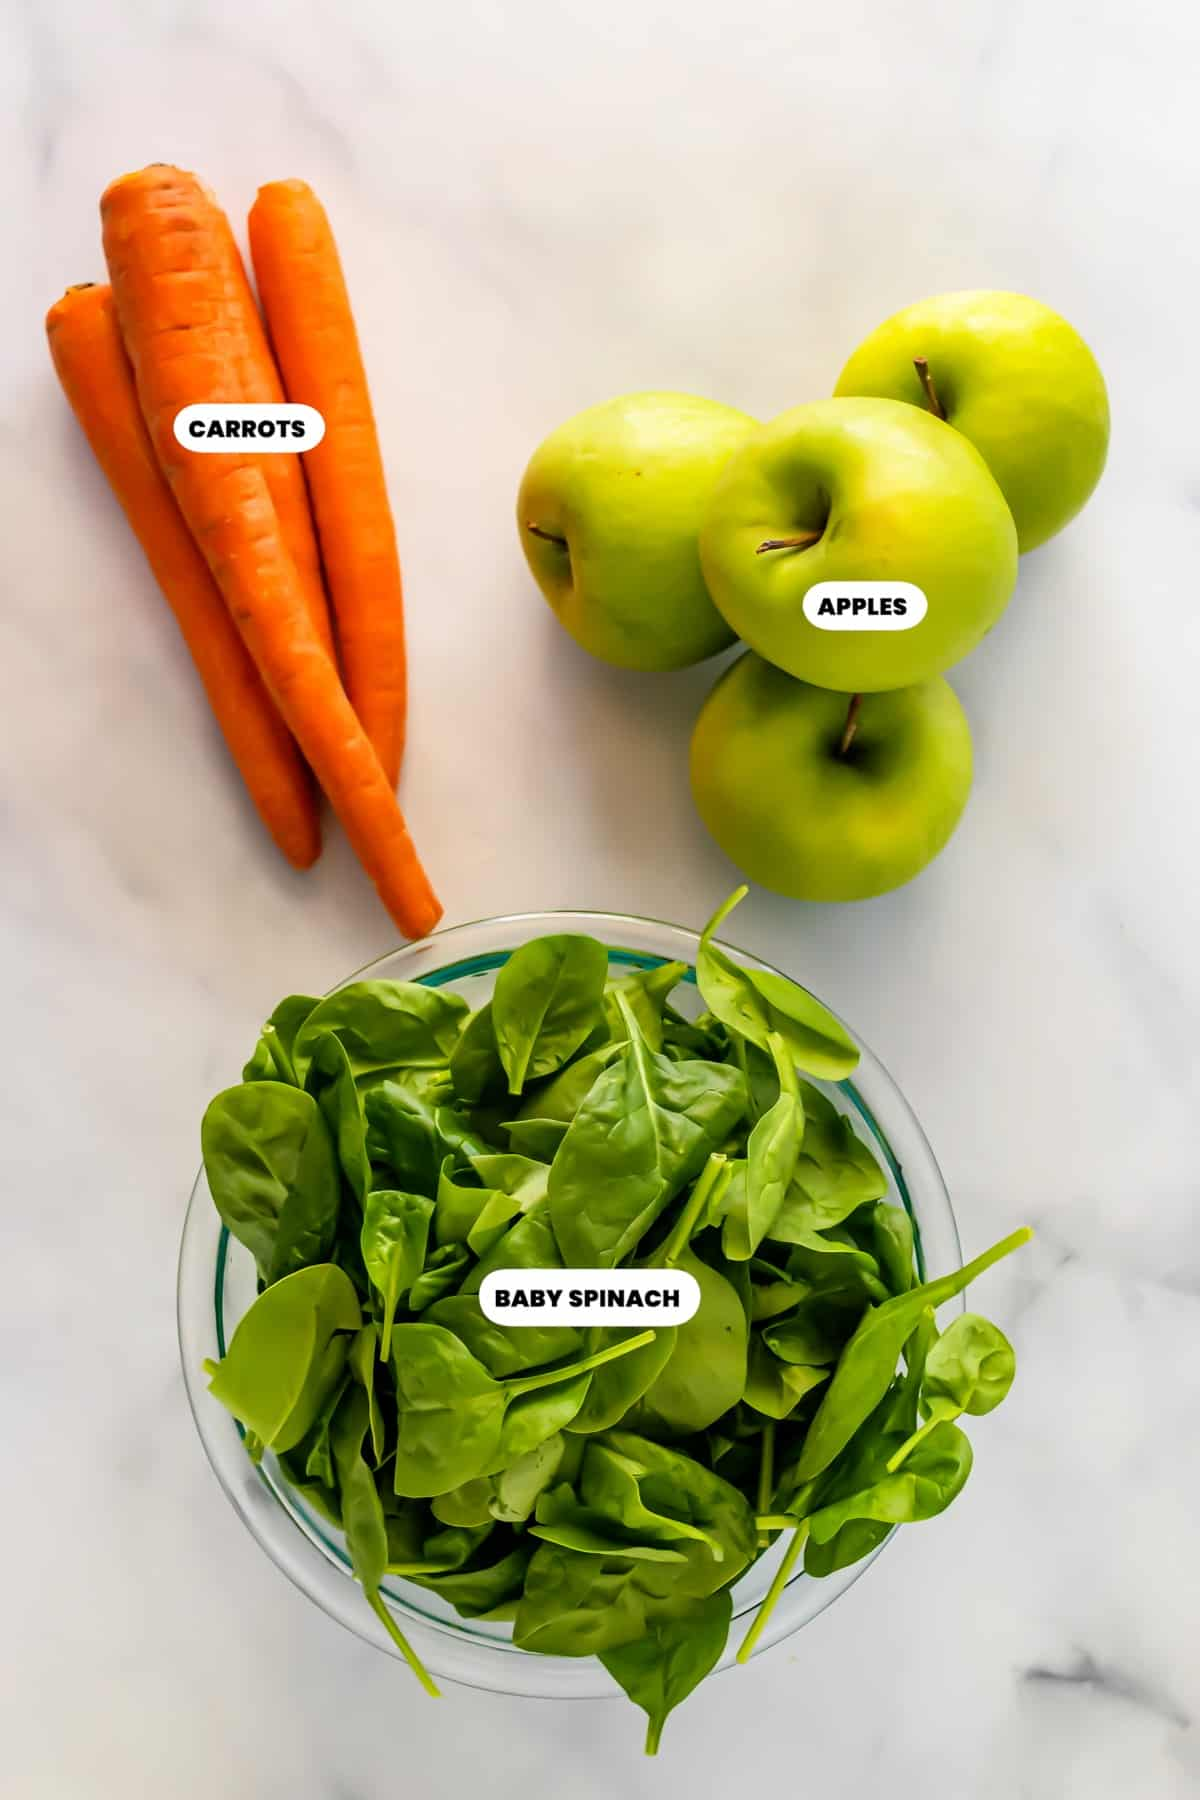 Photo of the ingredients needed to make a green juice.